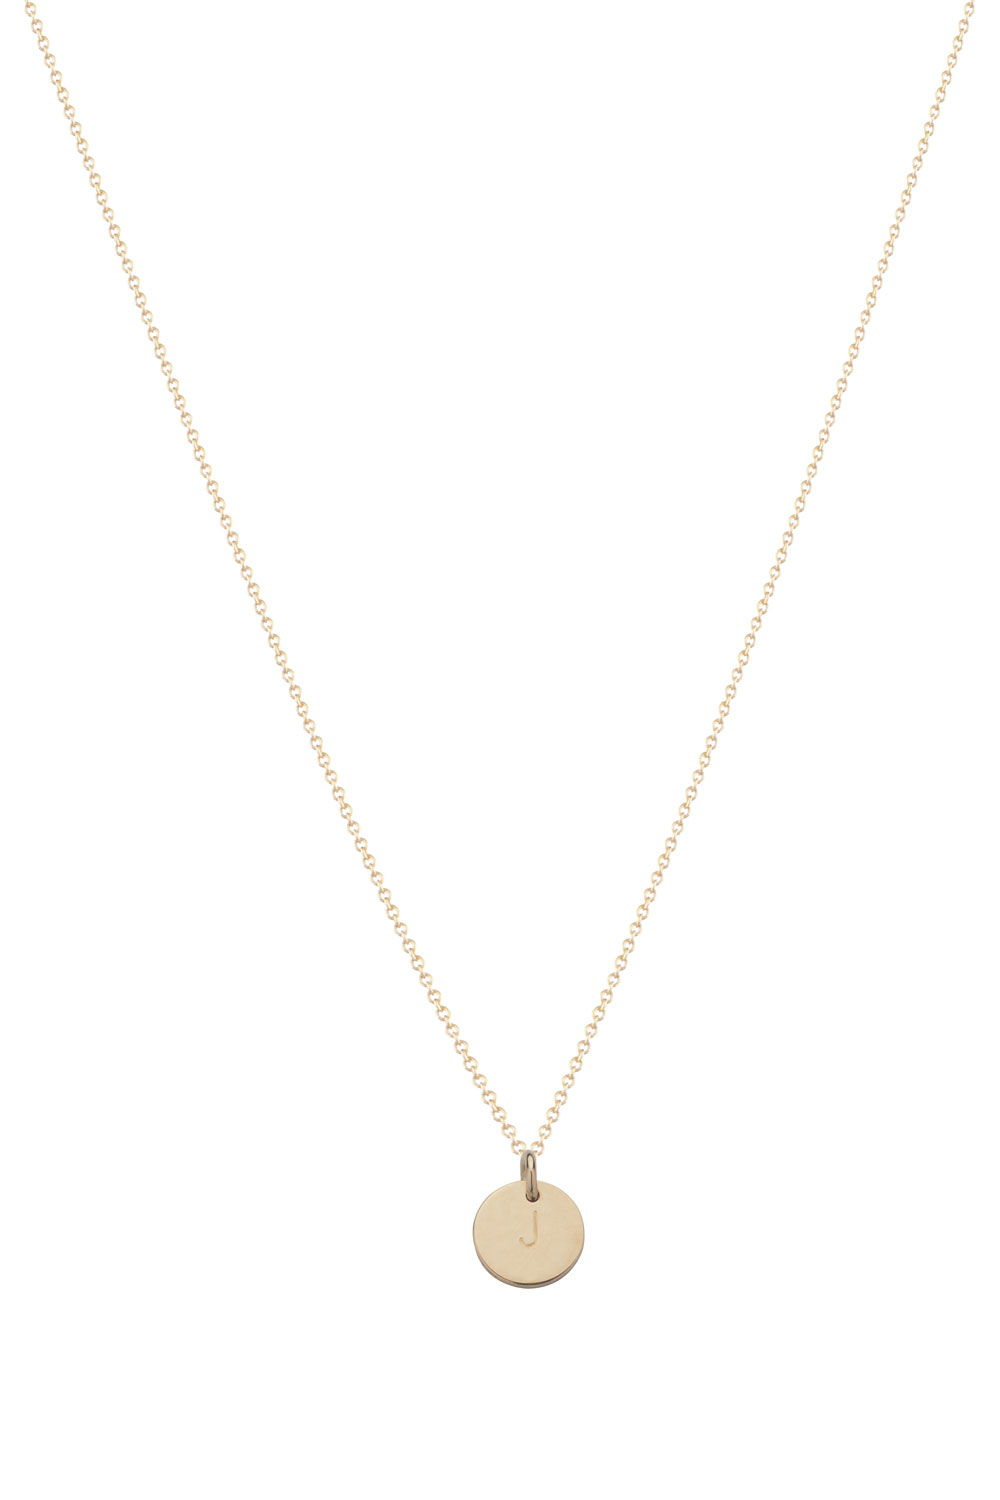 14kt Golden Necklace Coin 40 Cm Gold